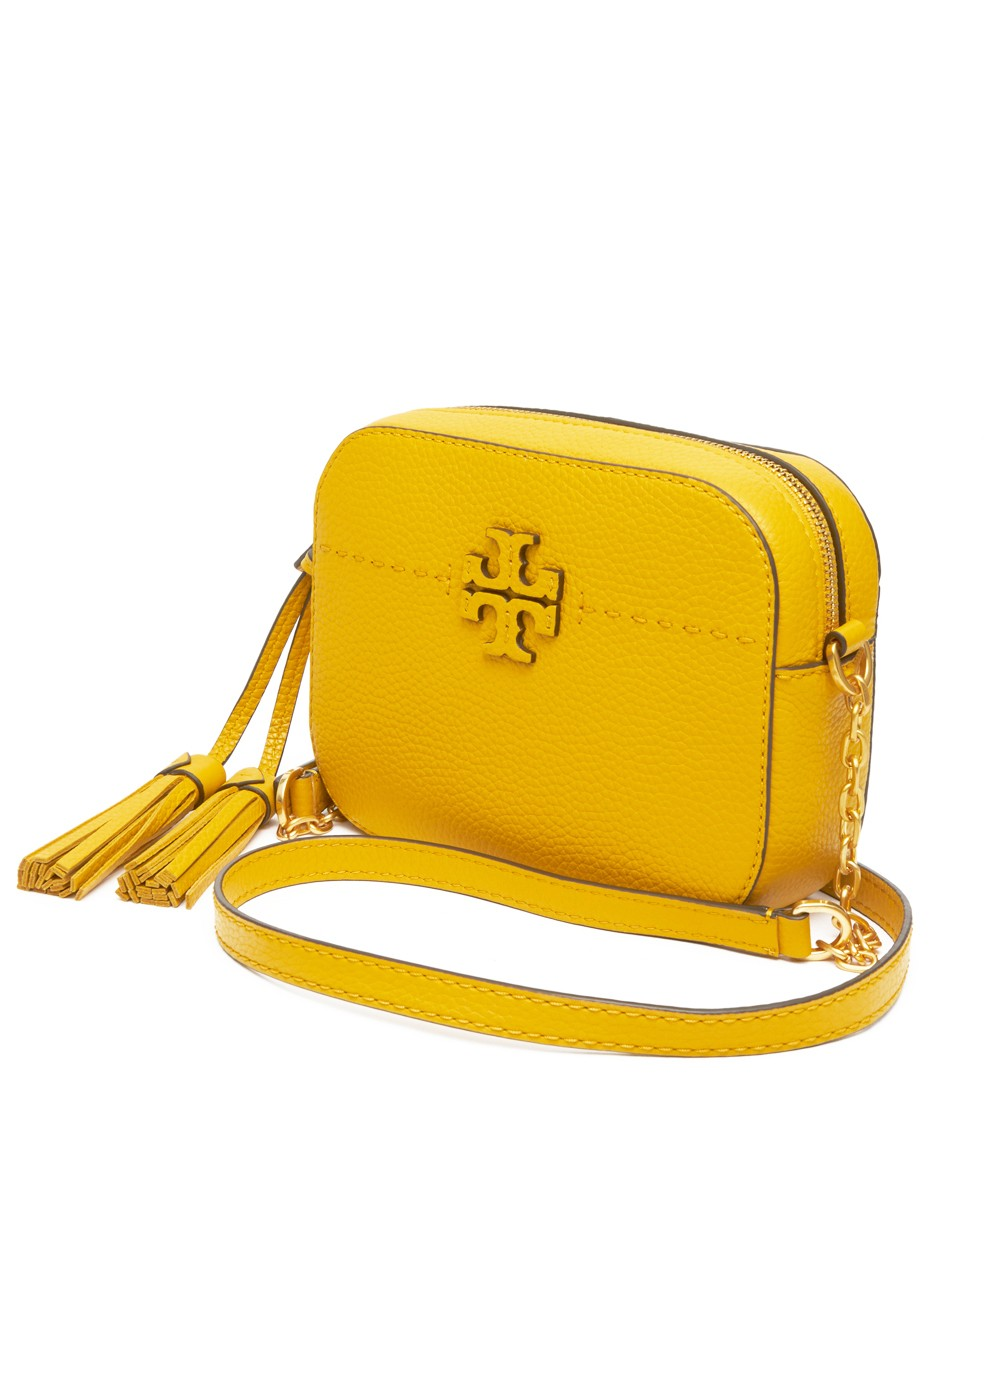 【最大42%OFF】MC GRAW CAMERA BAG|DAYLILY|ショルダーバッグ|Tory Burch